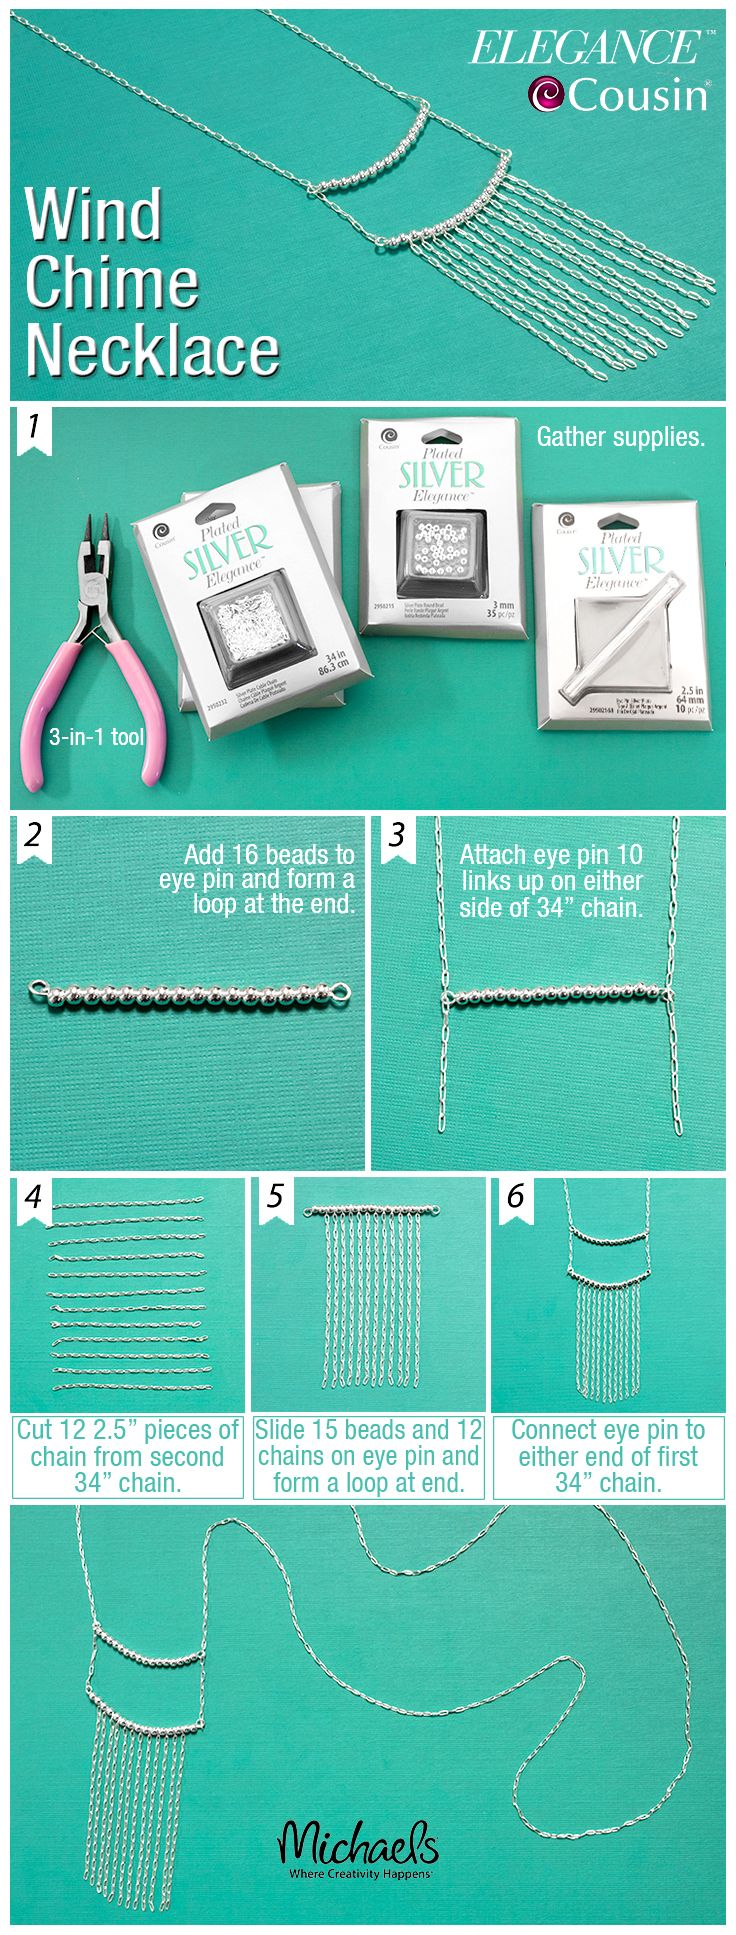 best jewelry images on pinterest board bricolage and herb box